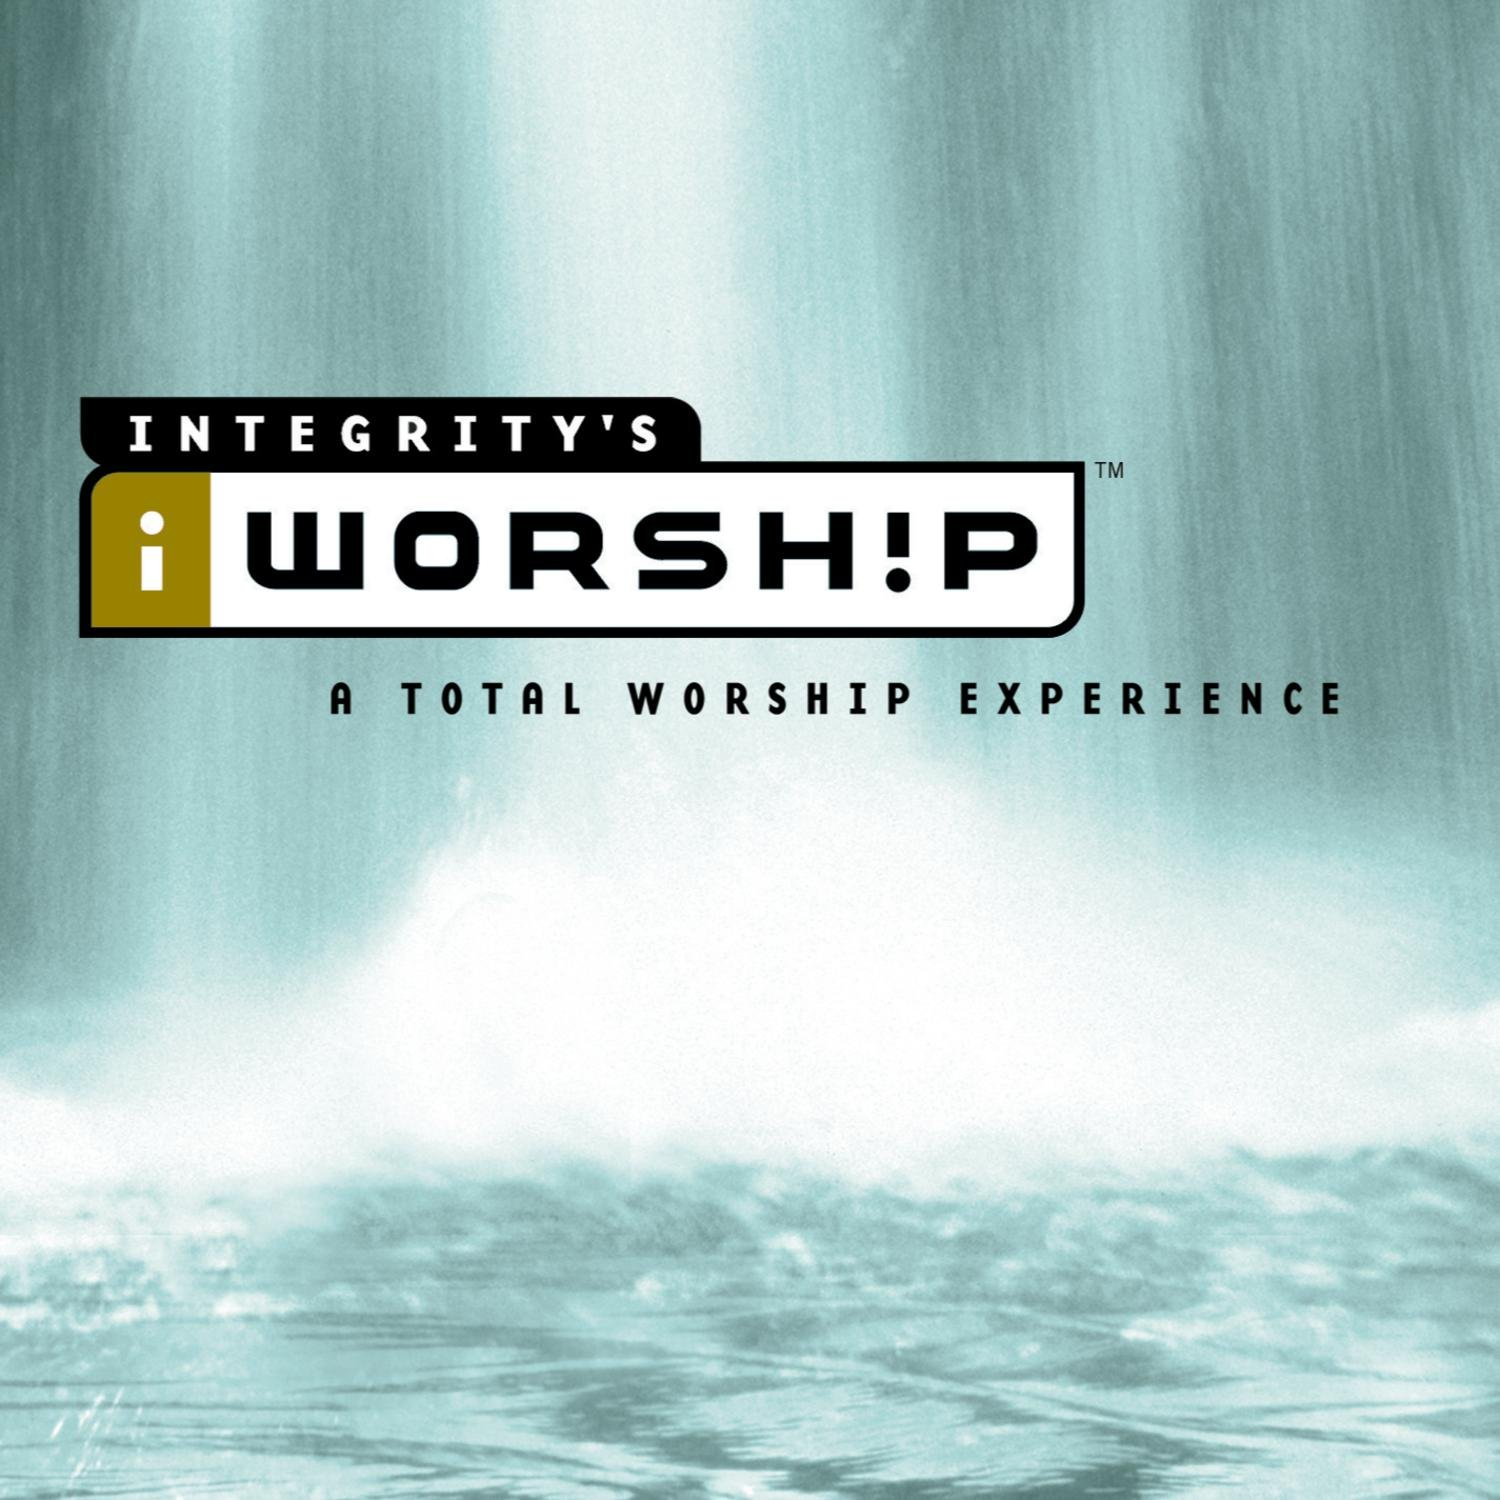 i worship: A Total Worship Experience